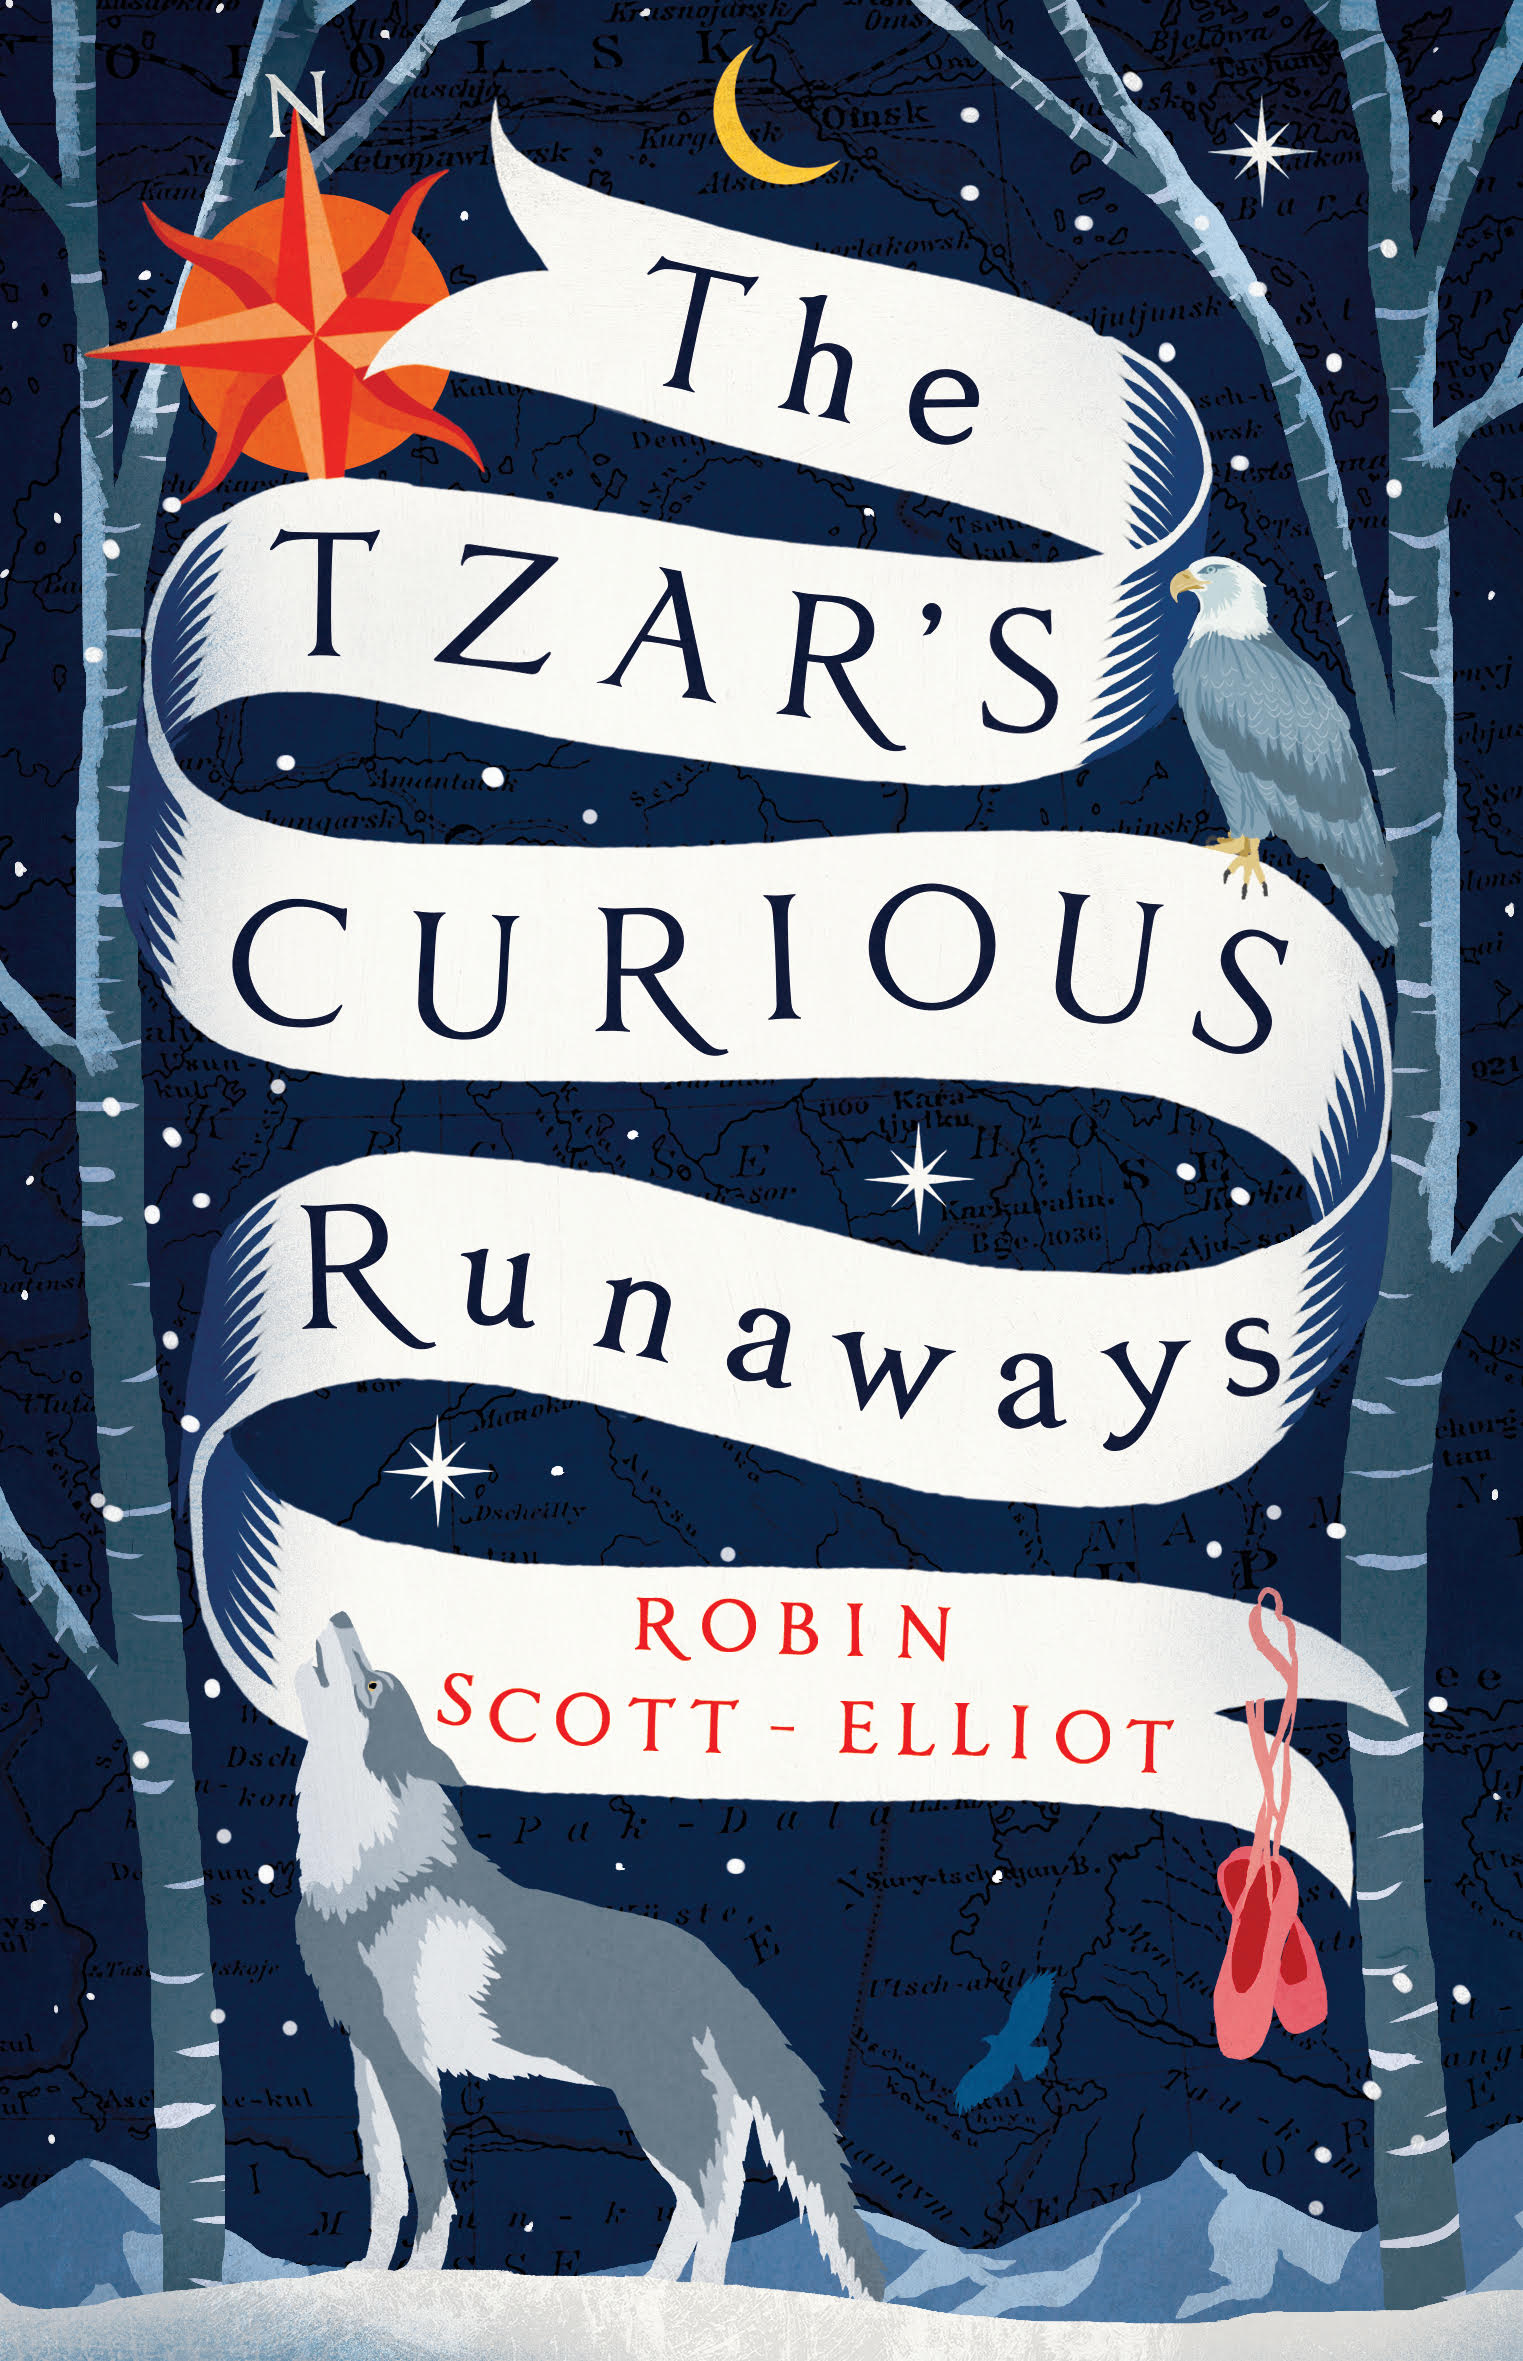 The Tzar's curious runaways book cover by Robin Scott-Eliot